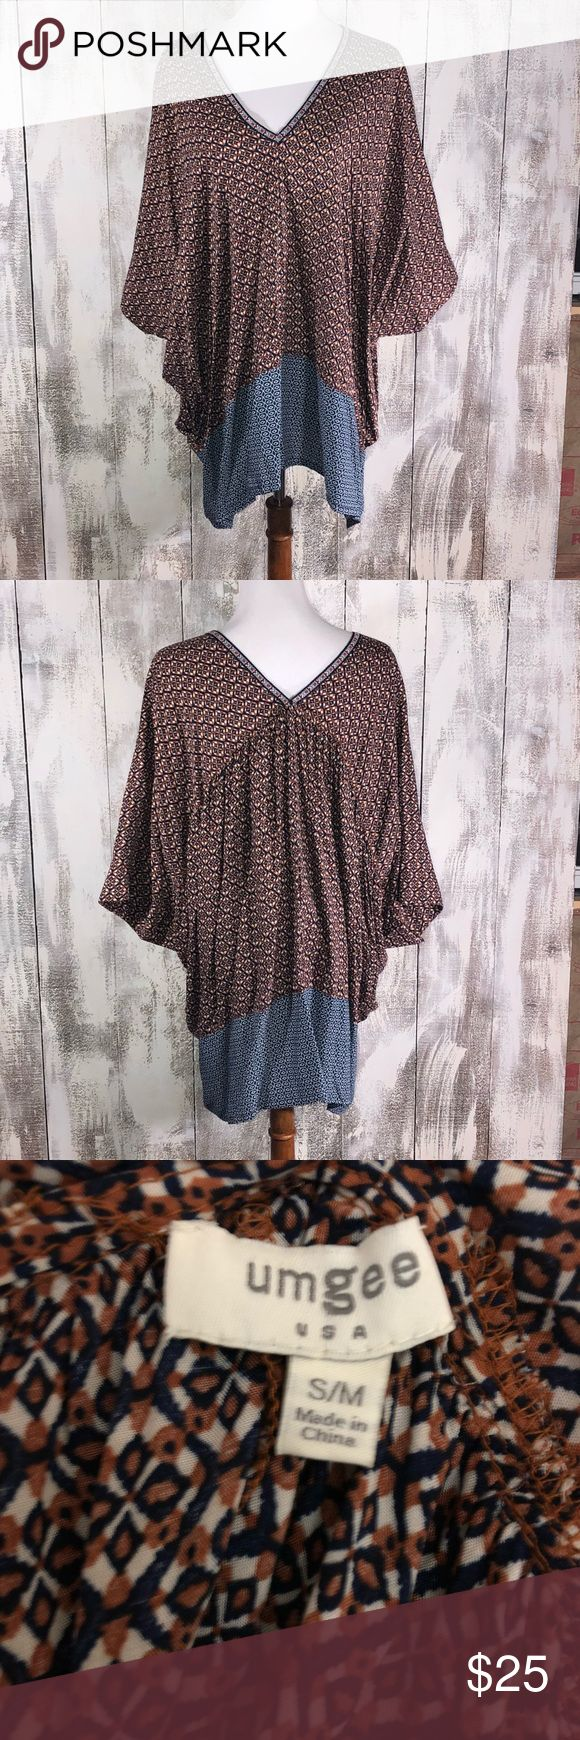 Umgee S/M Oversized Festival Blouse S/M Very Oversized  Pockets Umgee Tops